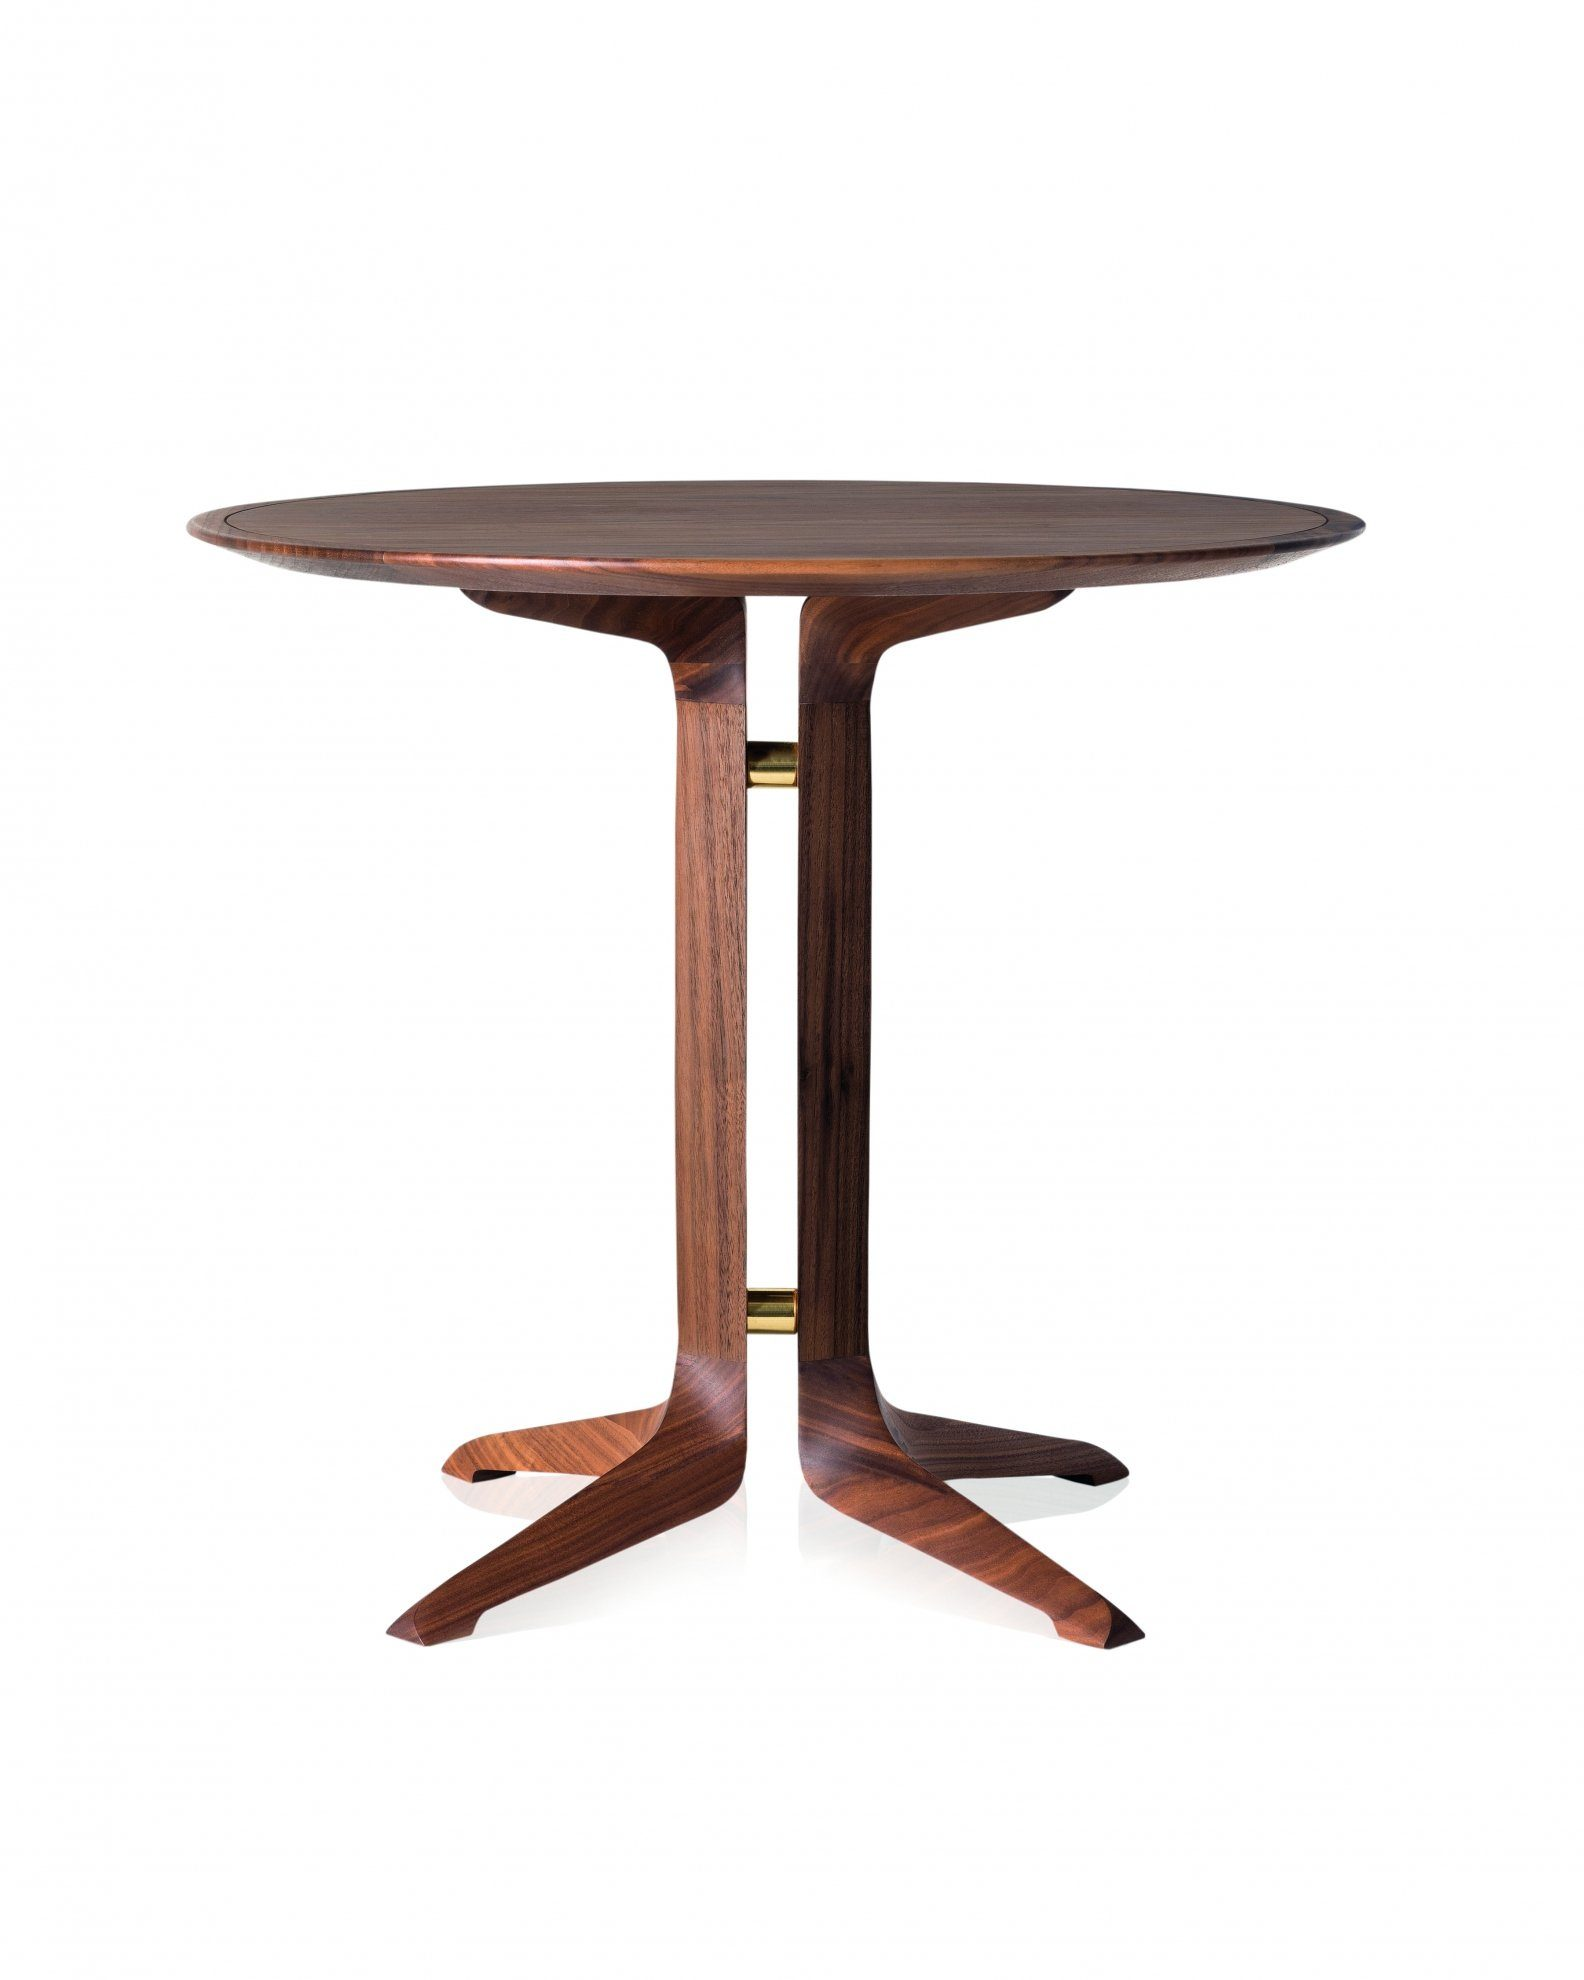 Legg side table by Jader Almeida - Kelly Christian Designs